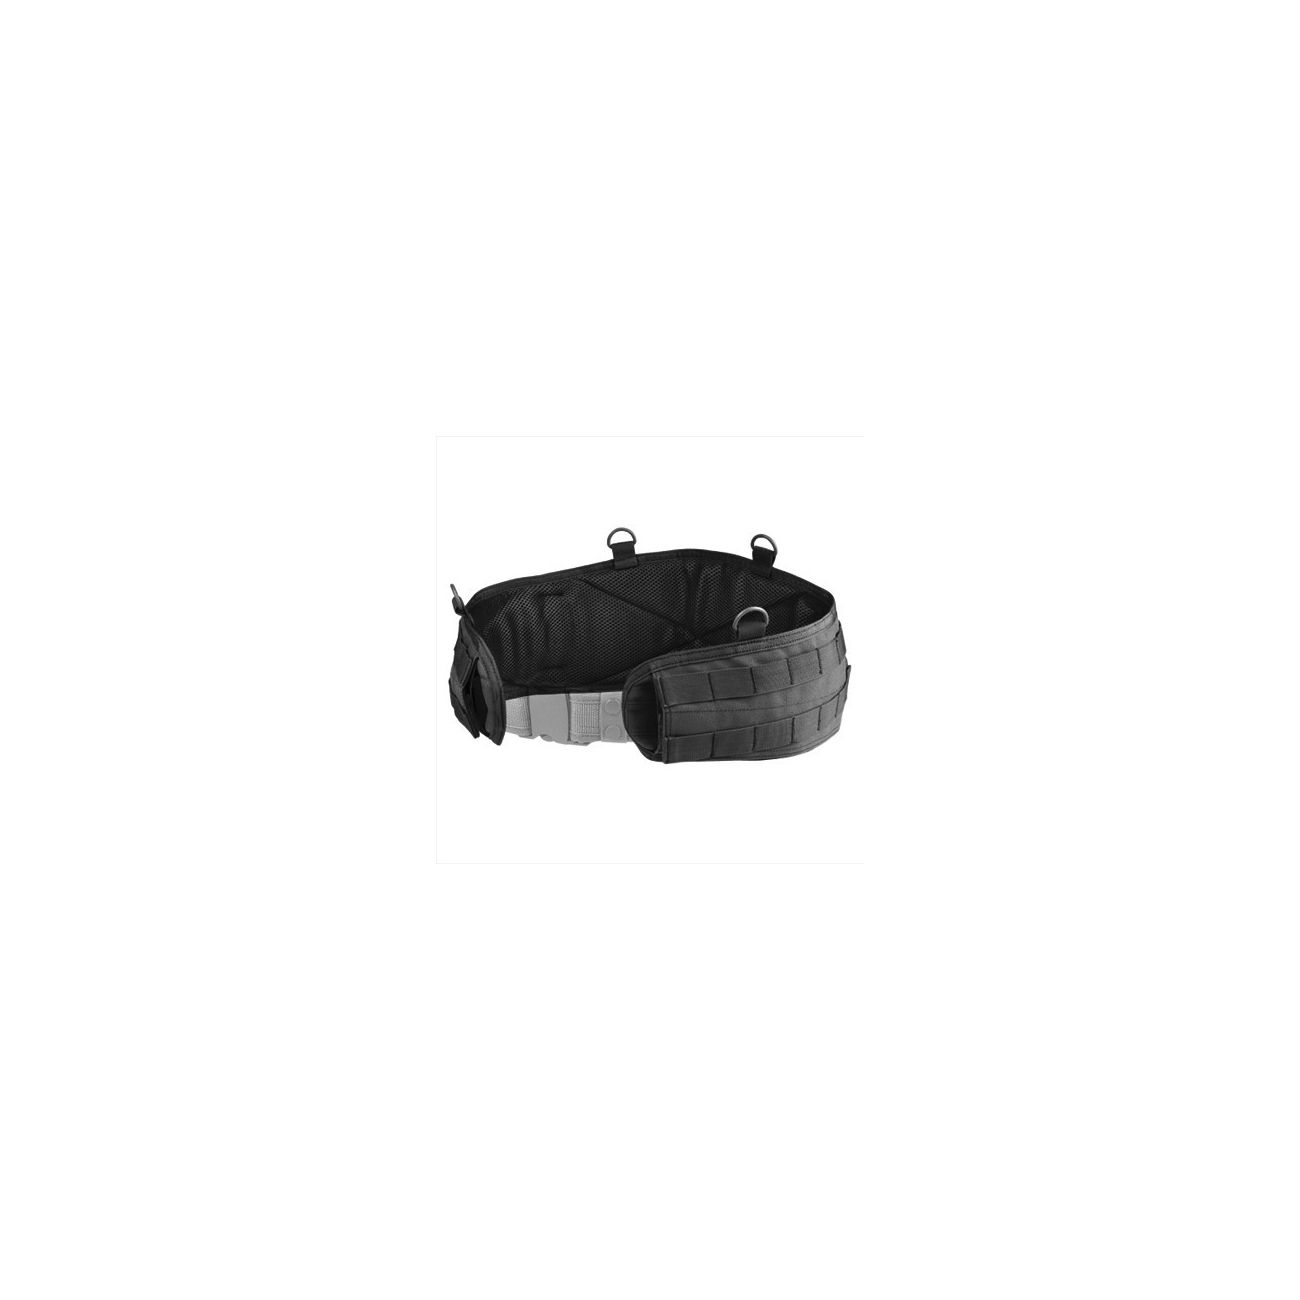 Condor Outdoor Hüftgürtel Battle Belt Generation II schwarz 0